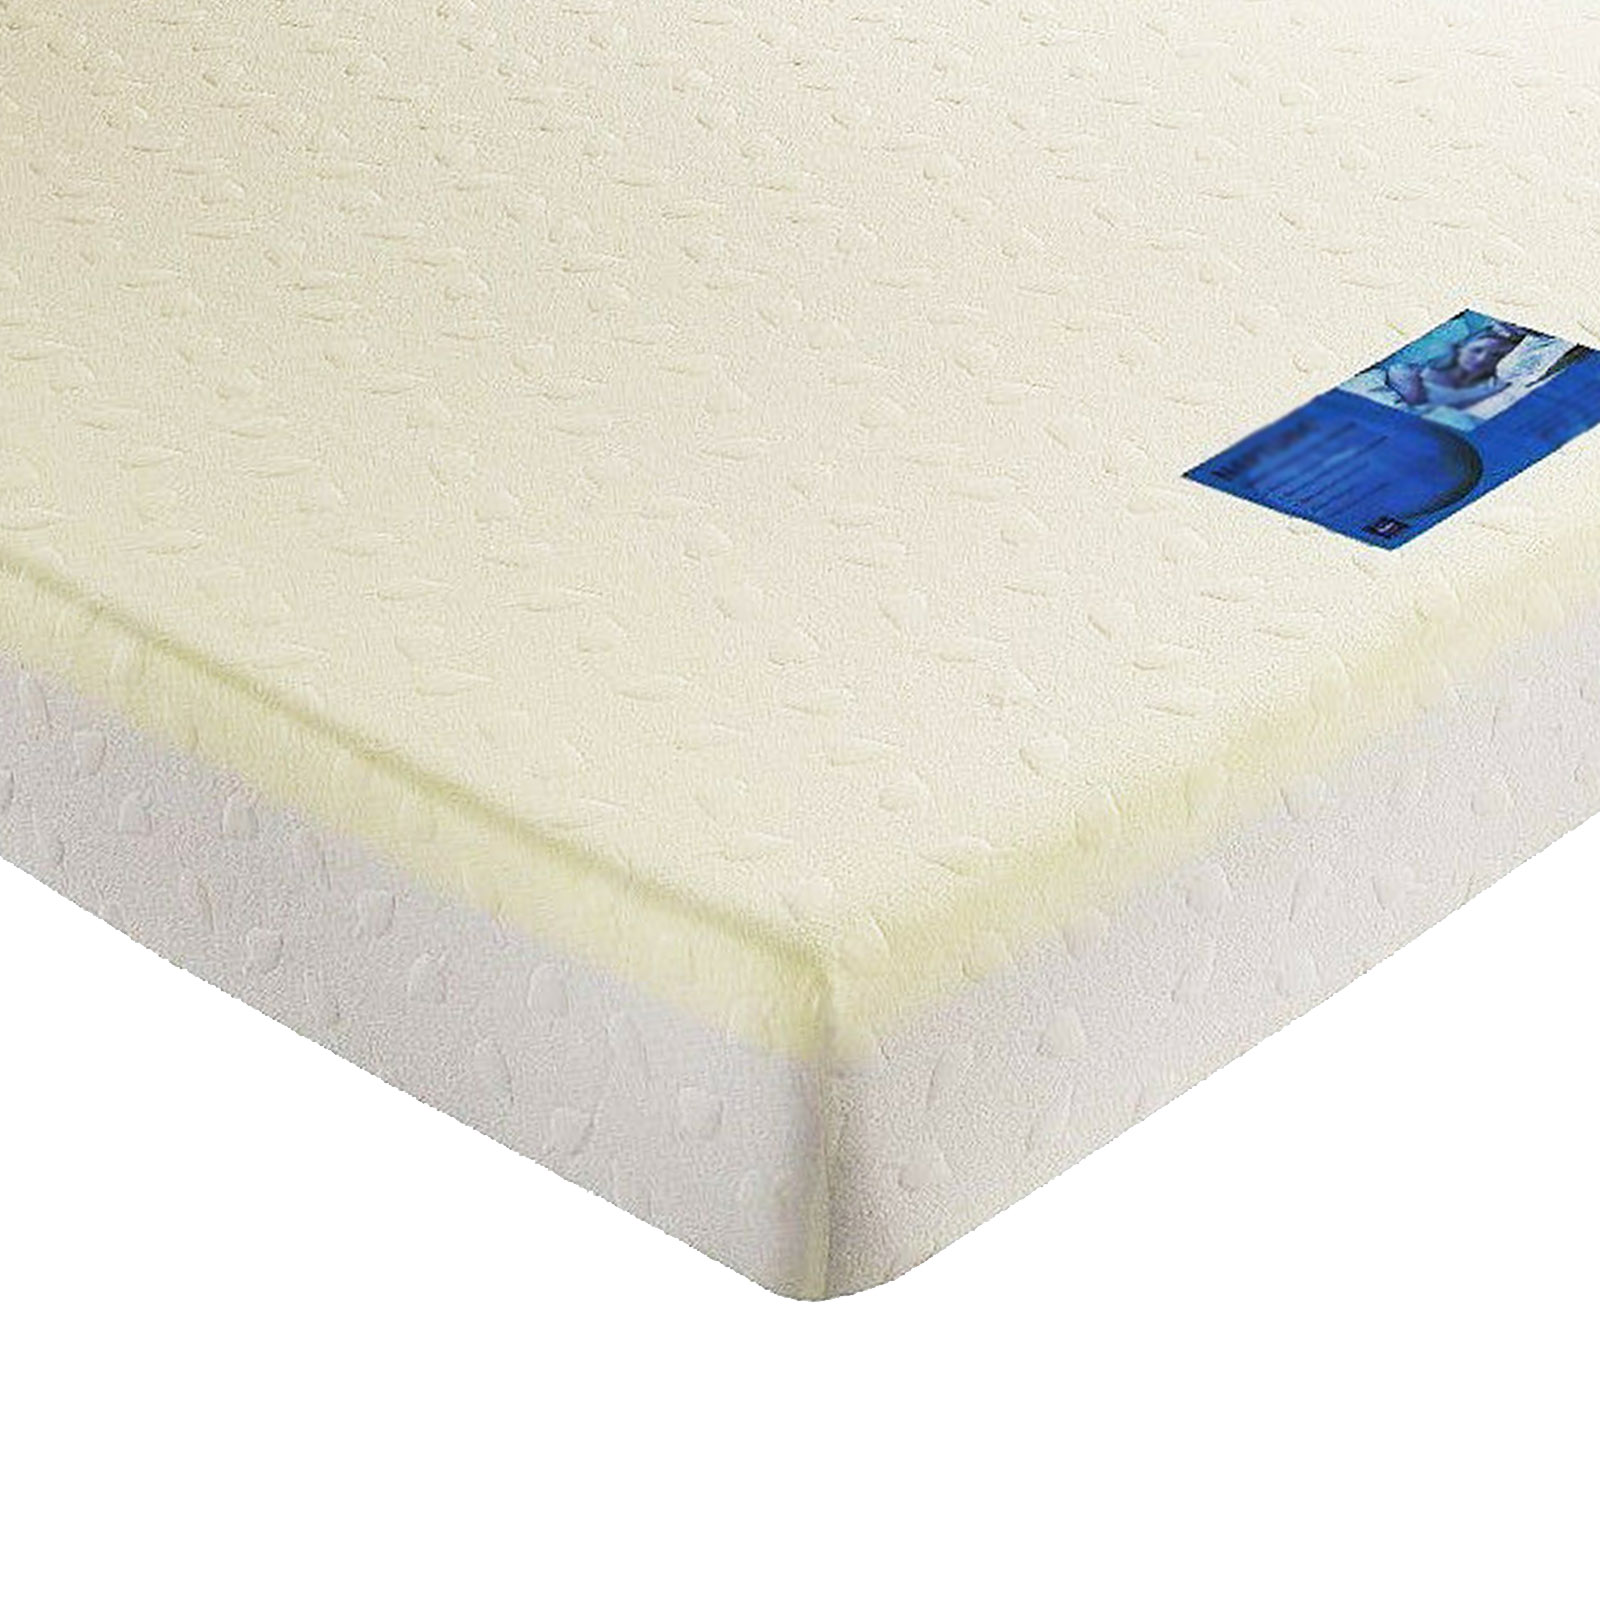 Latex Foam Mattress Maxicool Reflex Natural Latex Foam Mattress